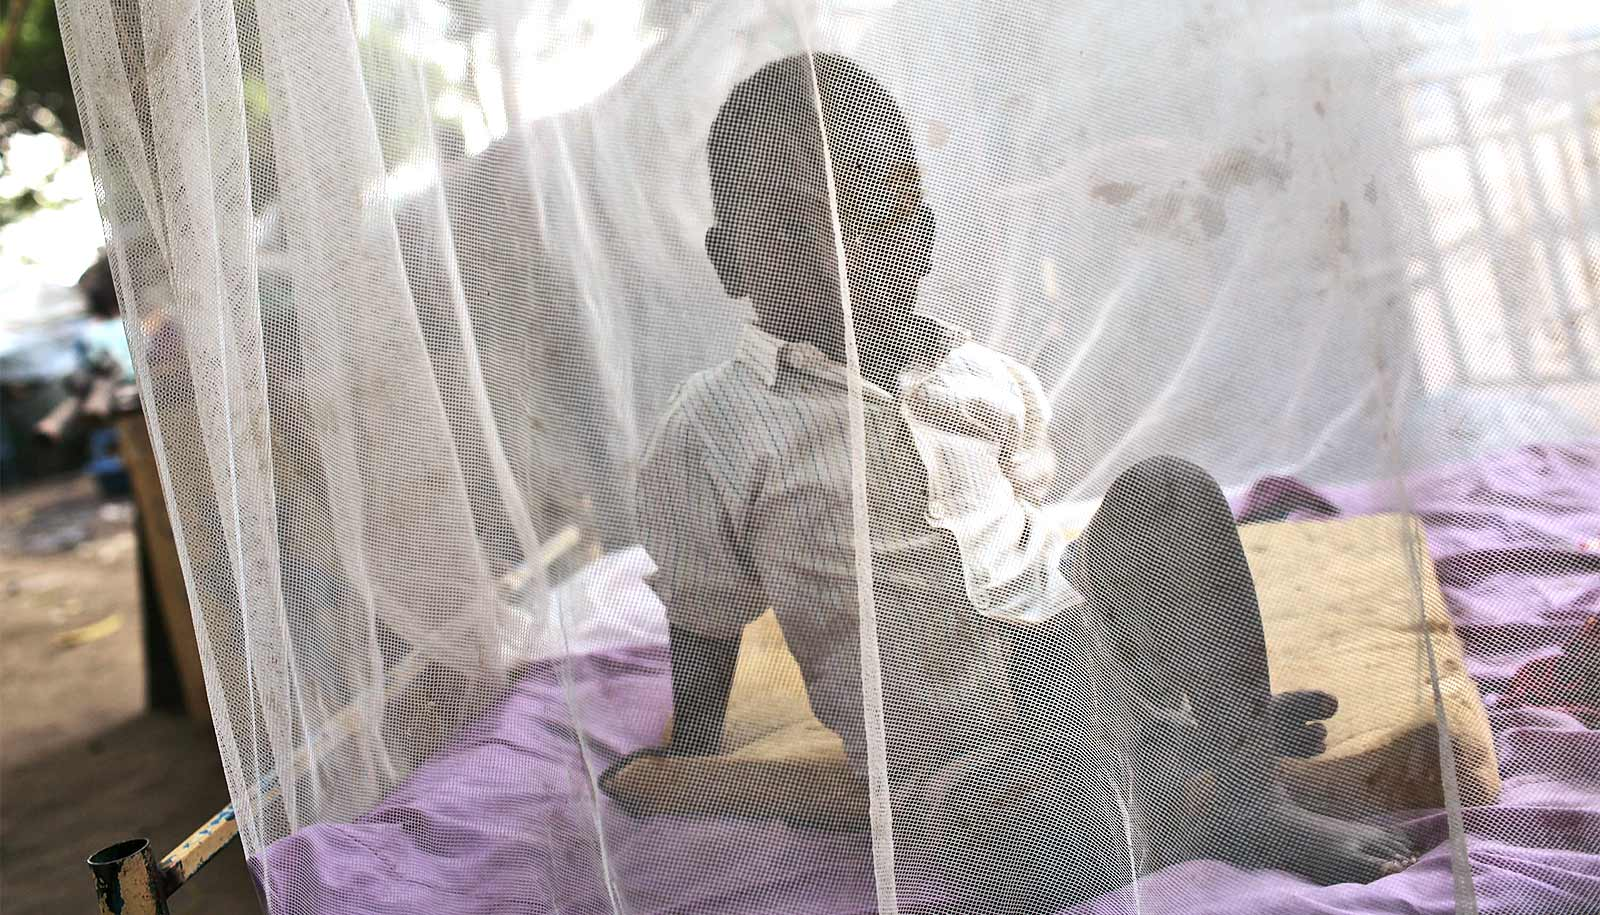 Bed nets with extra layer better shield against malaria